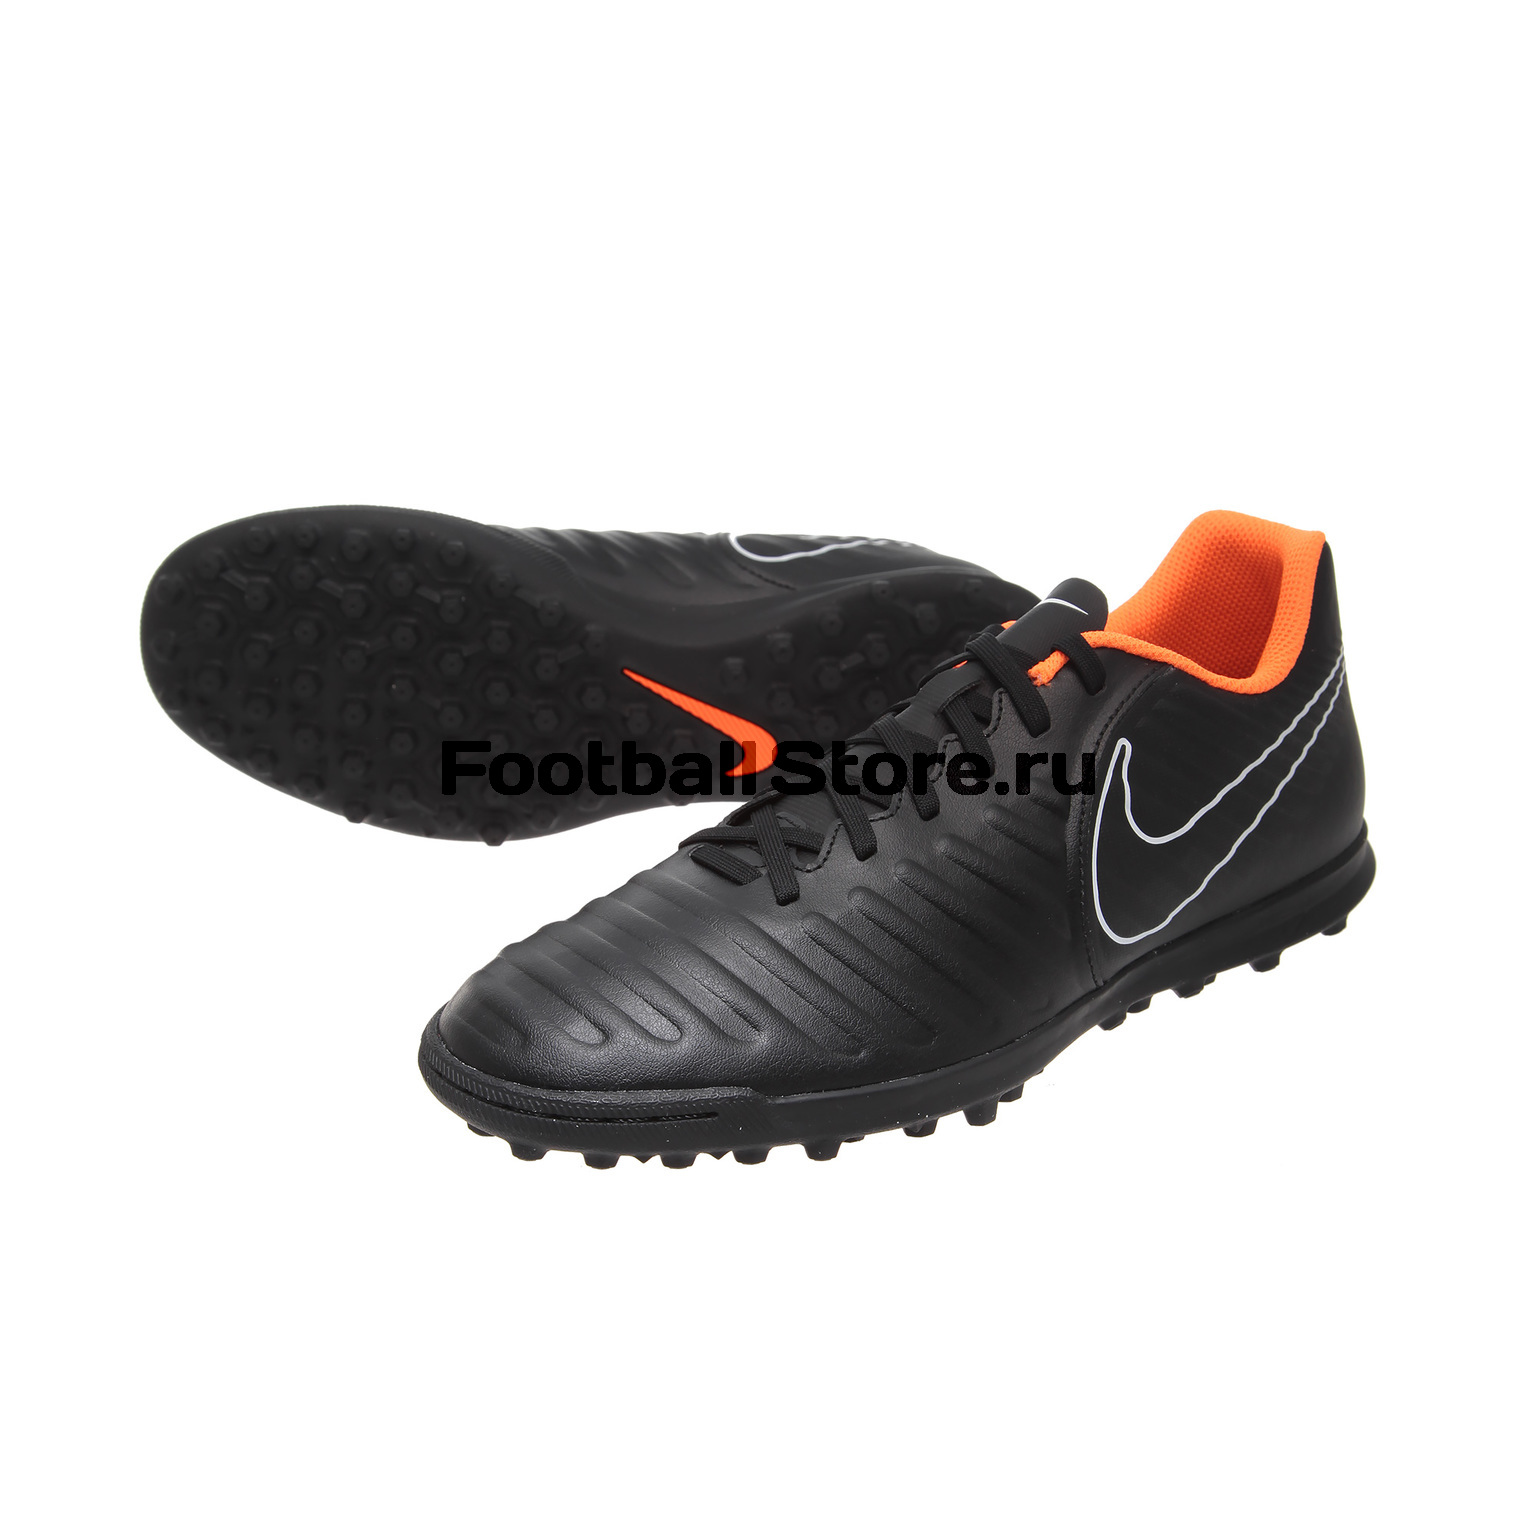 Шиповки Nike LegendX 7 Club TF AH7248-080 шиповки nike legendx 7 club tf ah7248 107